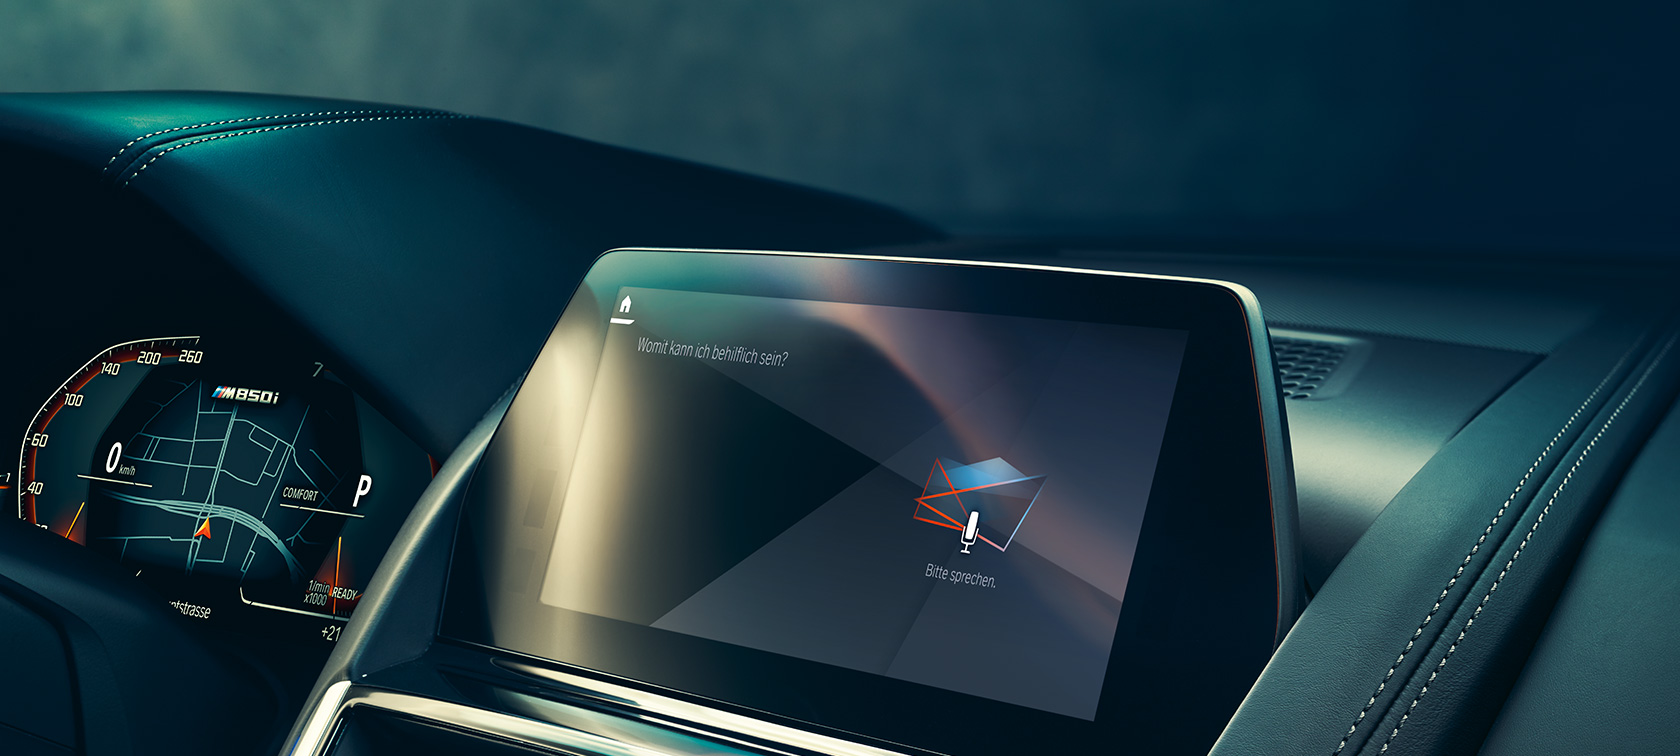 BMW Intelligent Personal Assistant screen in Control Display